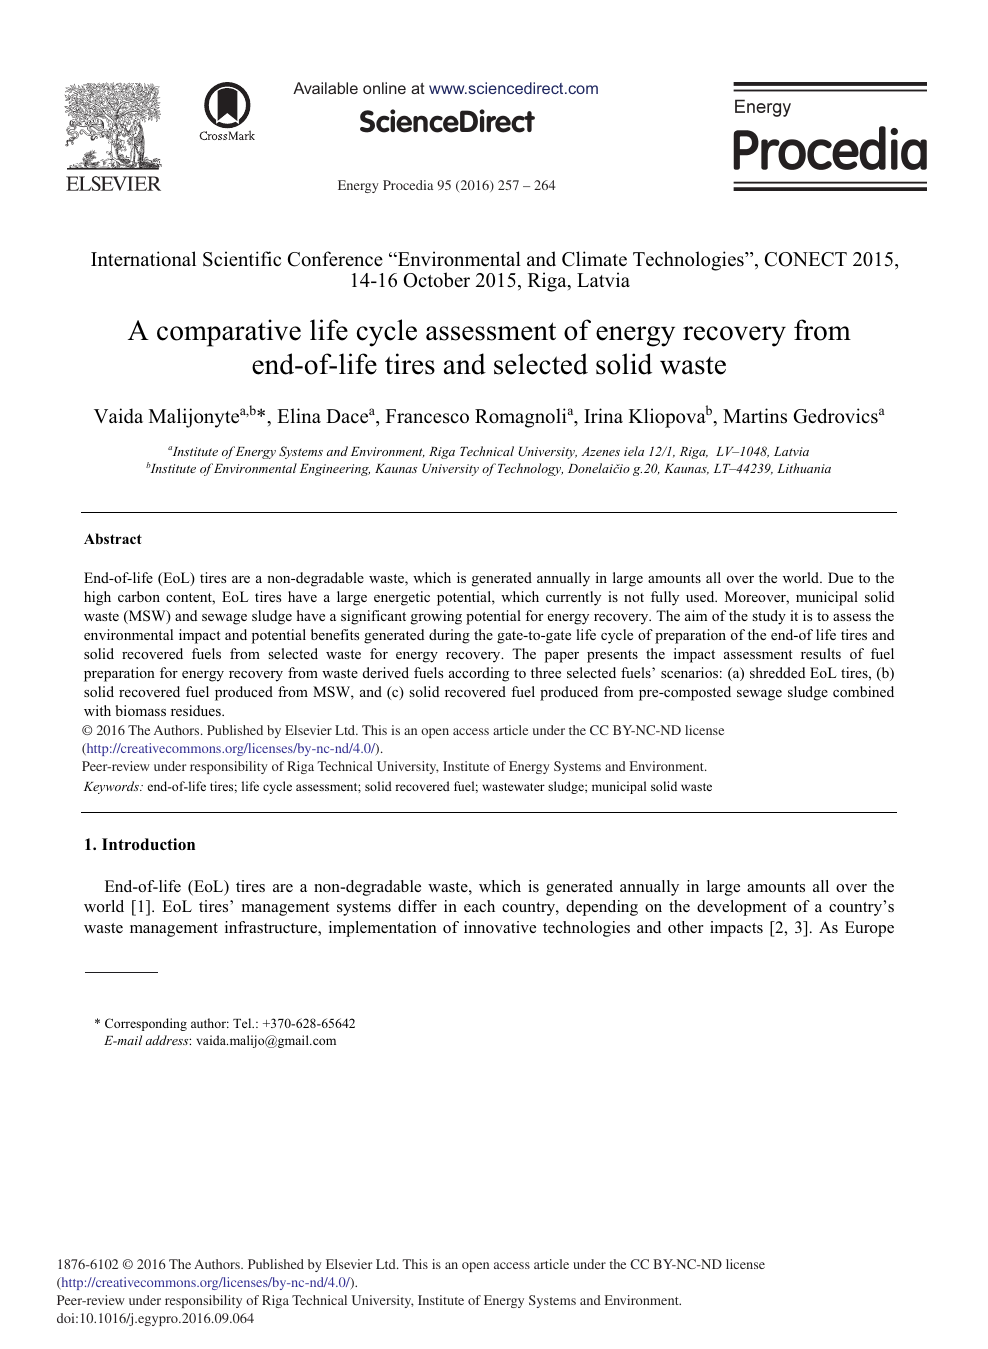 A Comparative Life Cycle Assessment of Energy Recovery from end-of